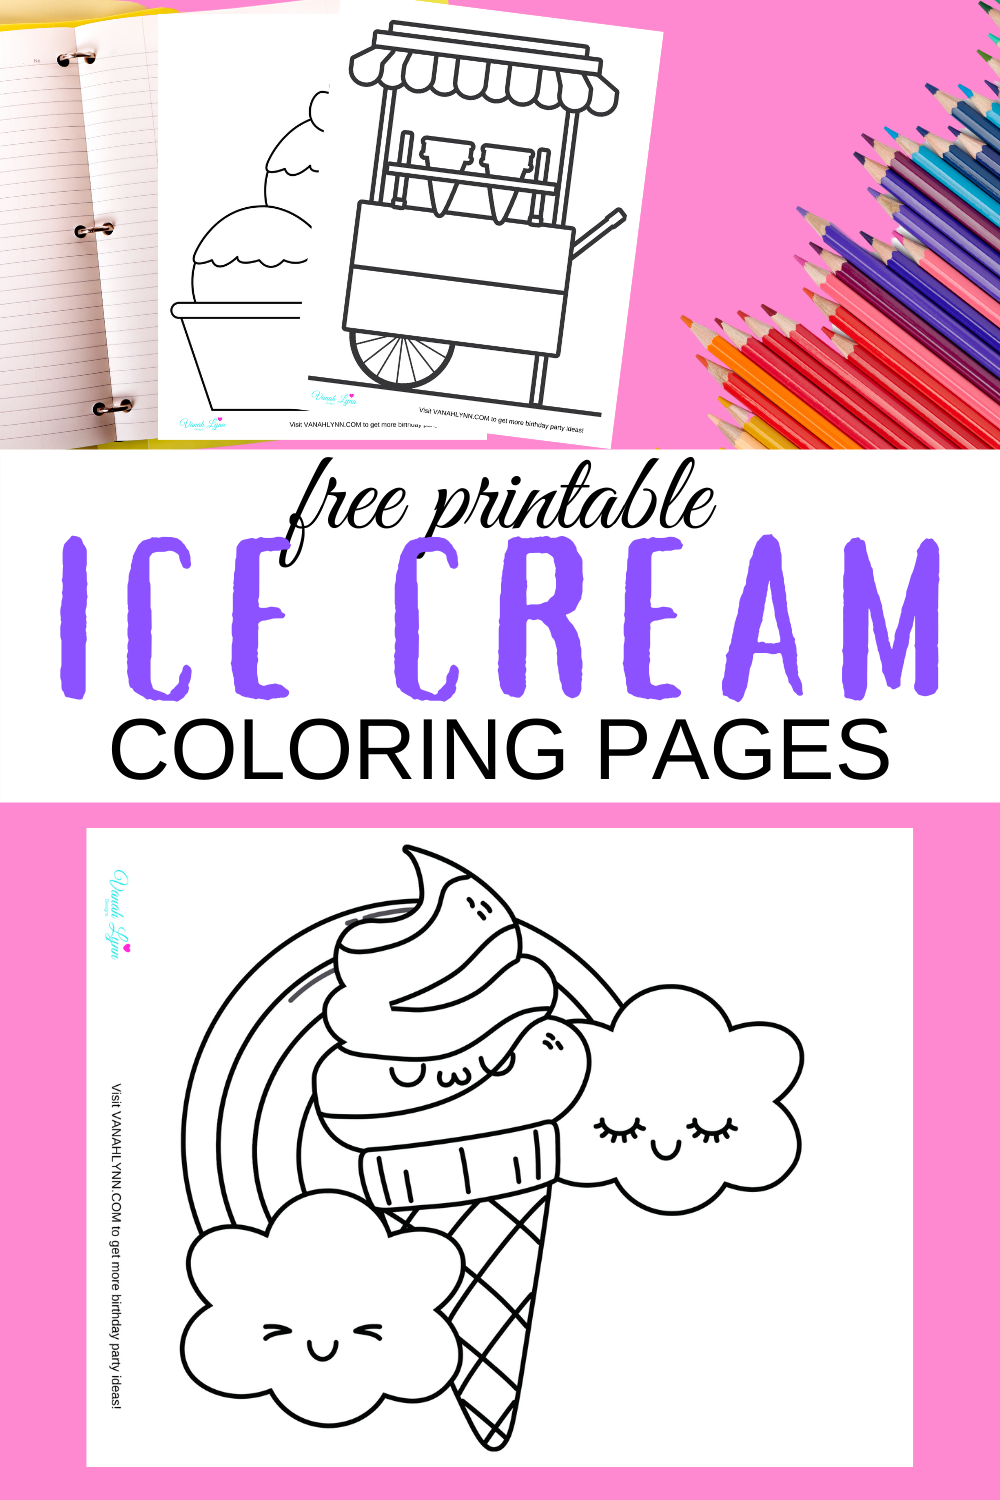 free printable ice cream coloring sheets for a birthday party